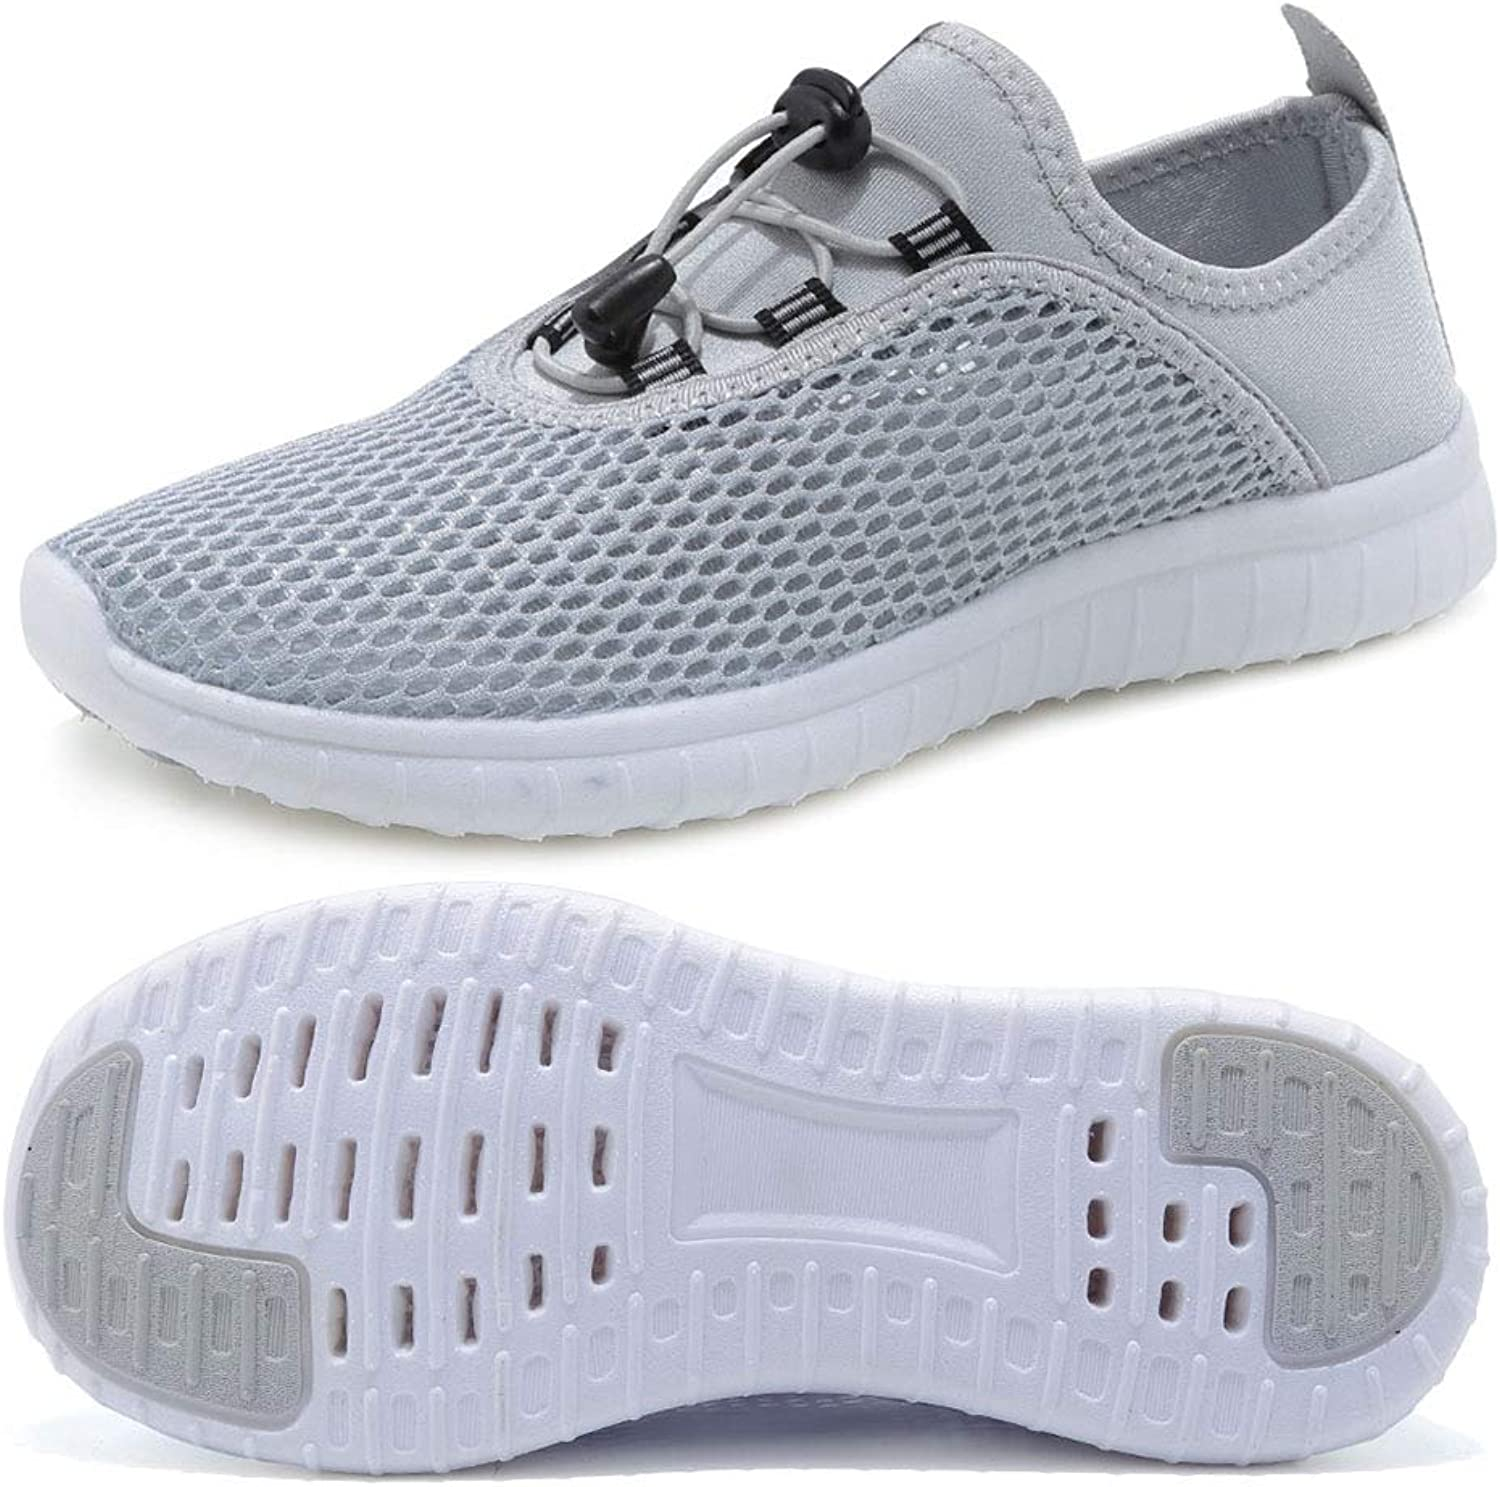 FCKEE Mens Quick Drying Water Aqua shoes